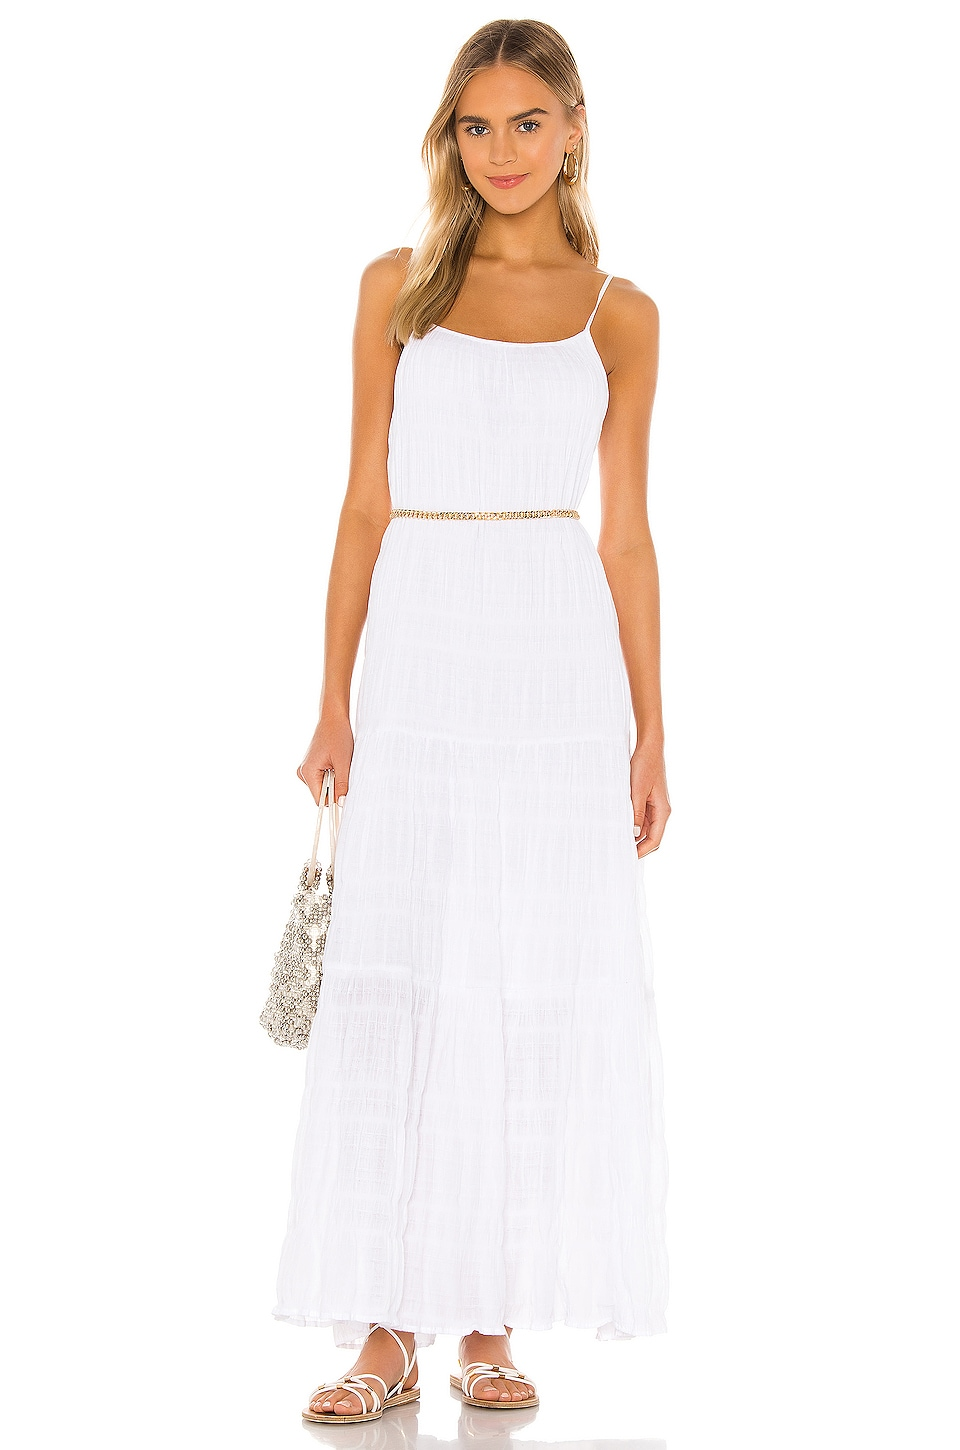 Roman Holiday Maxi Dress             BB Dakota                                                                                                       CA$ 182.55 11